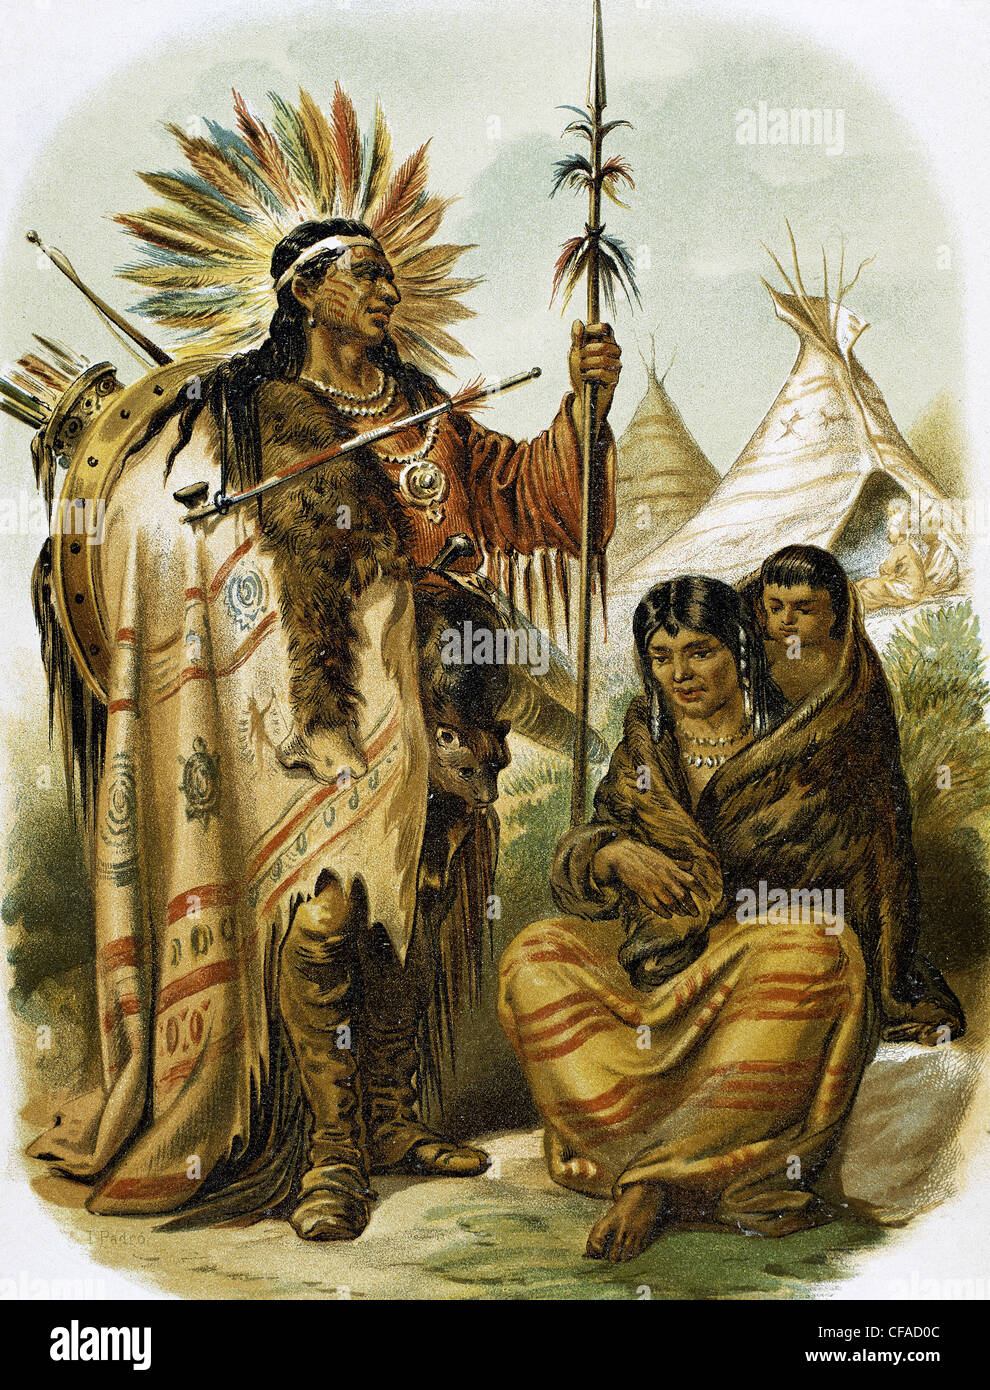 American indians. Indian red race. Colored engraving, late 19th century. - Stock Image